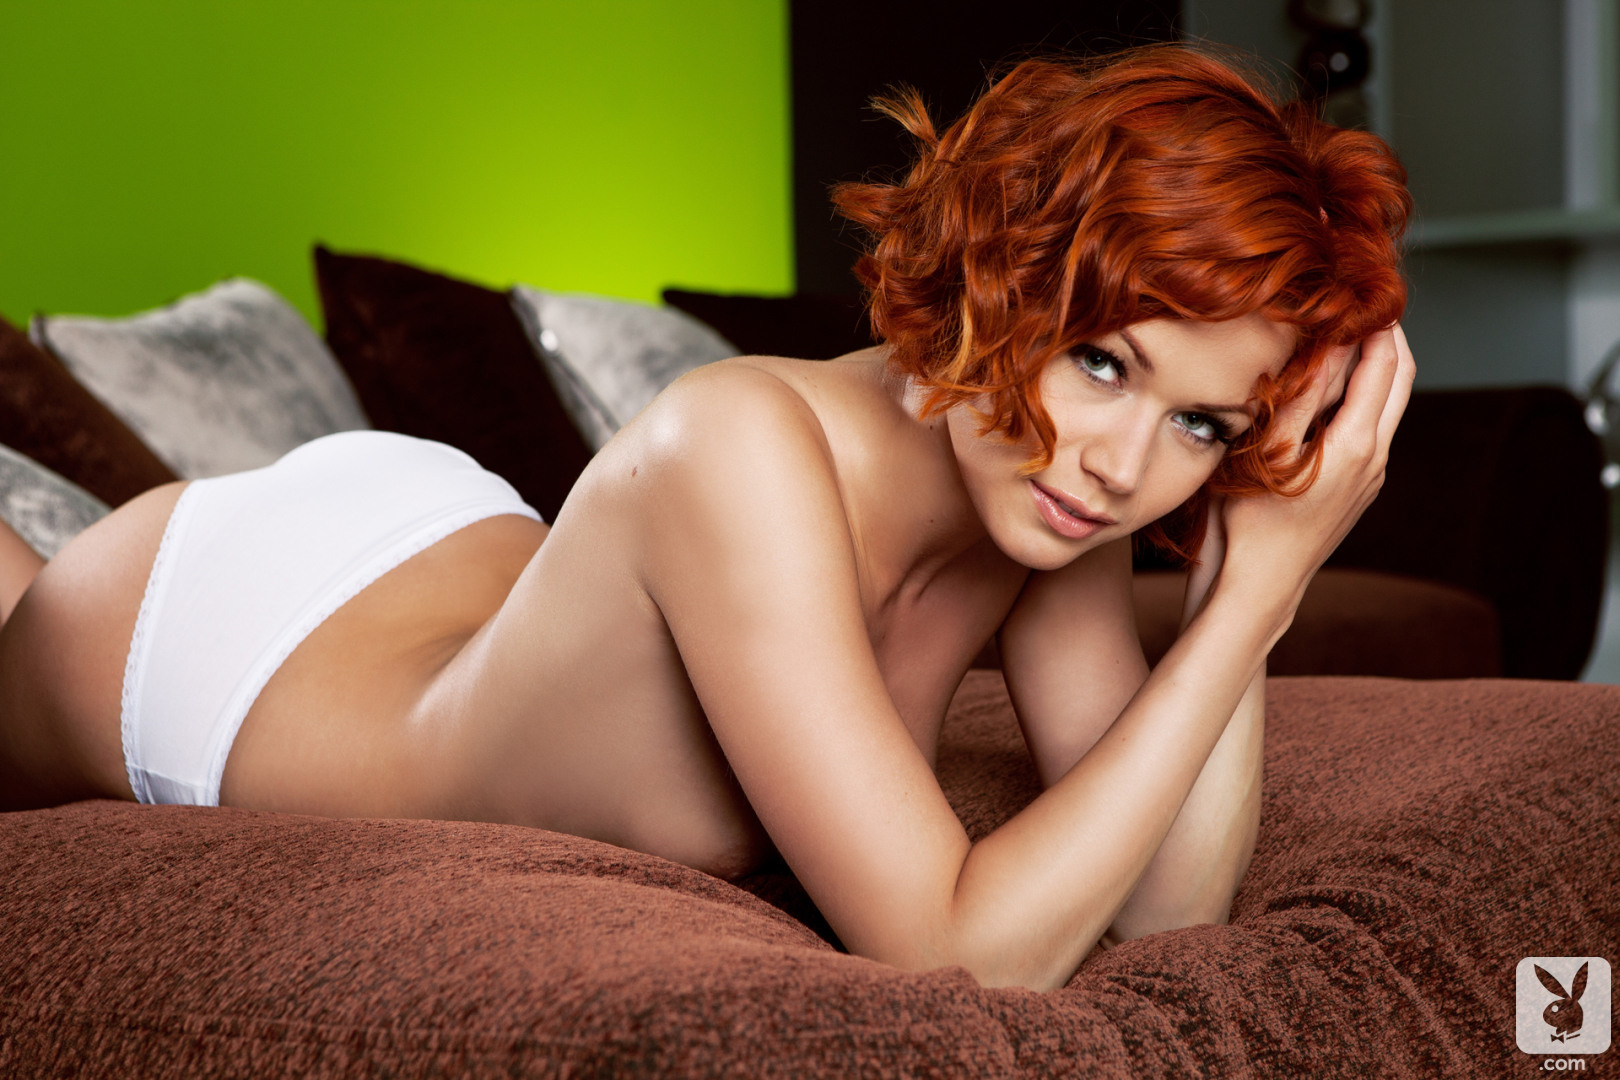 Kami in Just Lounging - Centerfolds Blog